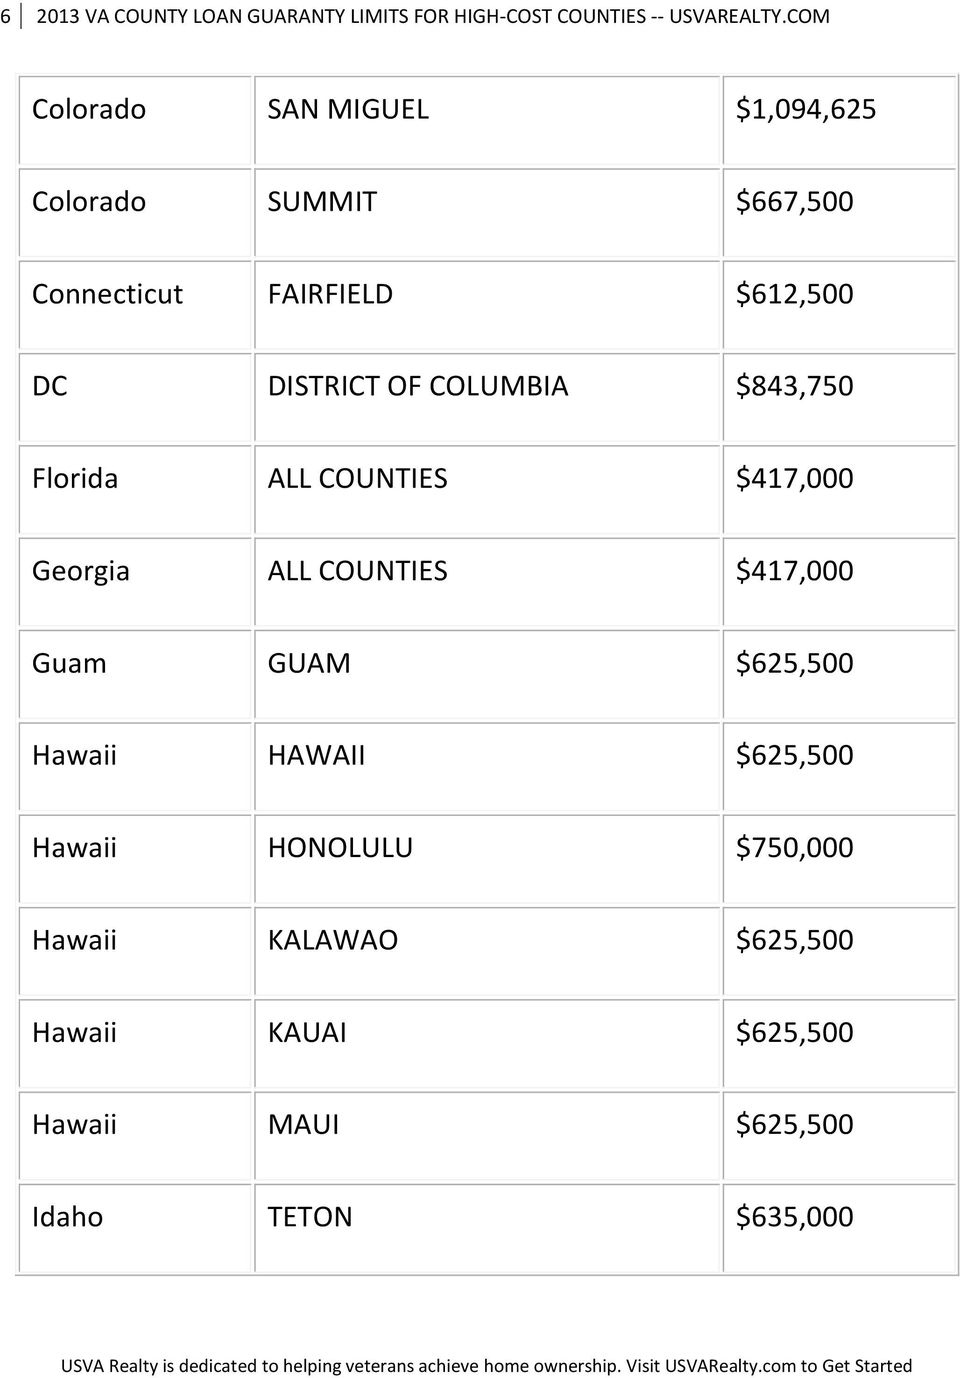 OF COLUMBIA $843,750 Florida ALL COUNTIES $417,000 Georgia ALL COUNTIES $417,000 Guam GUAM $625,500